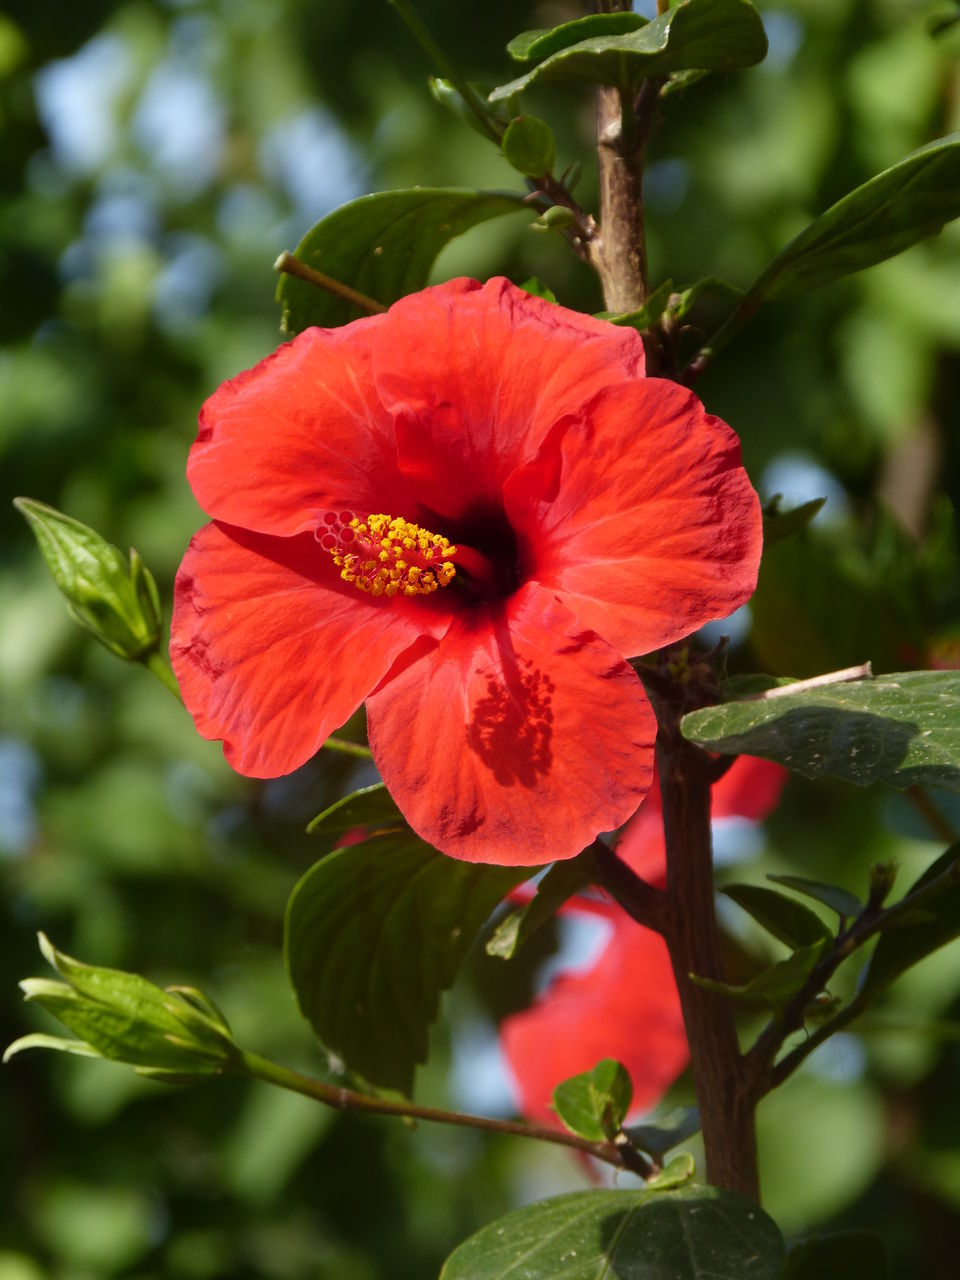 flower, petal, beauty in nature, fragility, red, nature, flower head, freshness, hibiscus, growth, no people, outdoors, day, plant, blooming, close-up, leaf